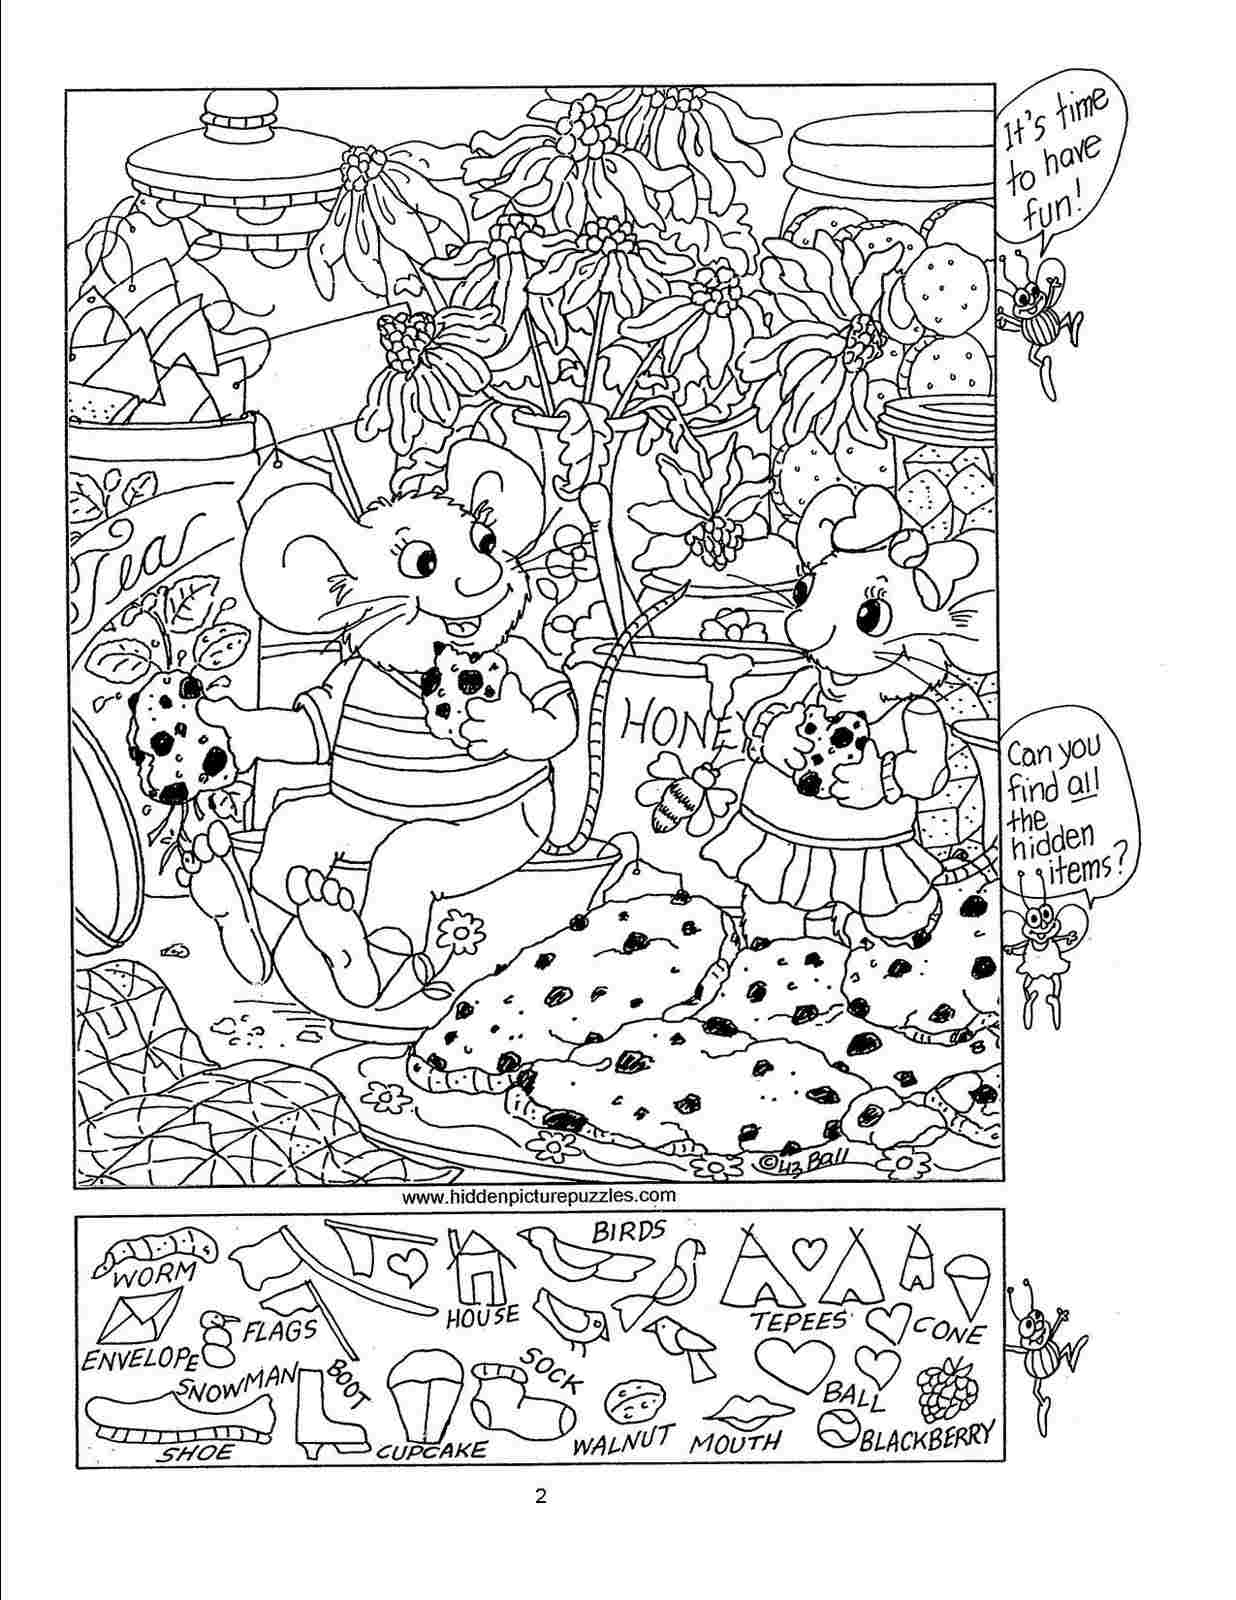 Free Hidden Picture Printables